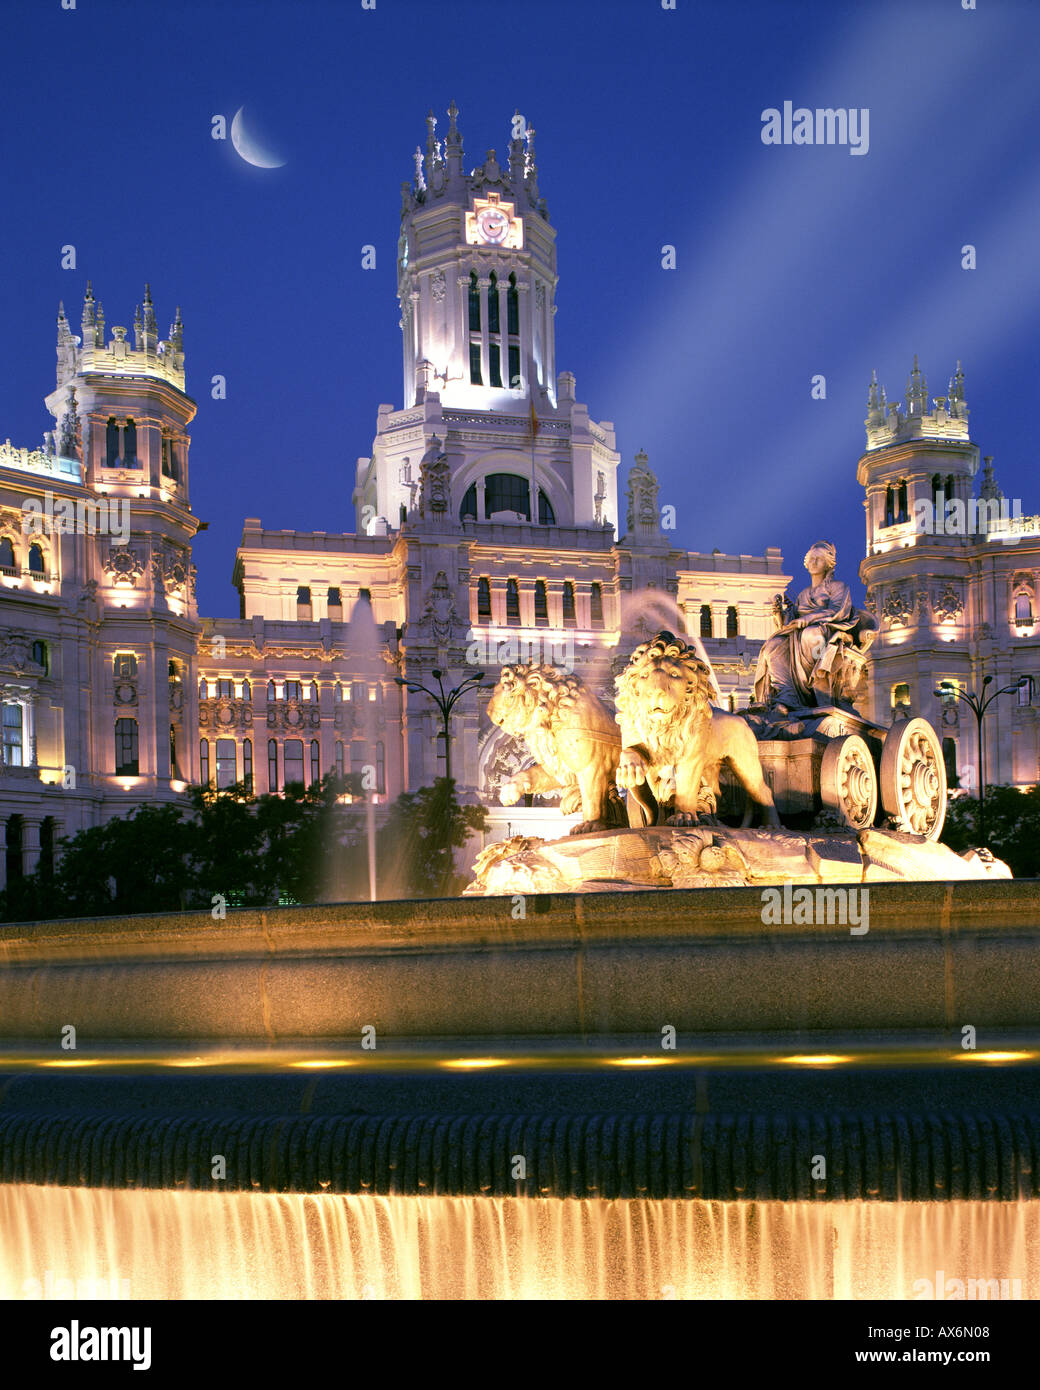 ES - MADRID: Plaza de Cibeles Stockbild